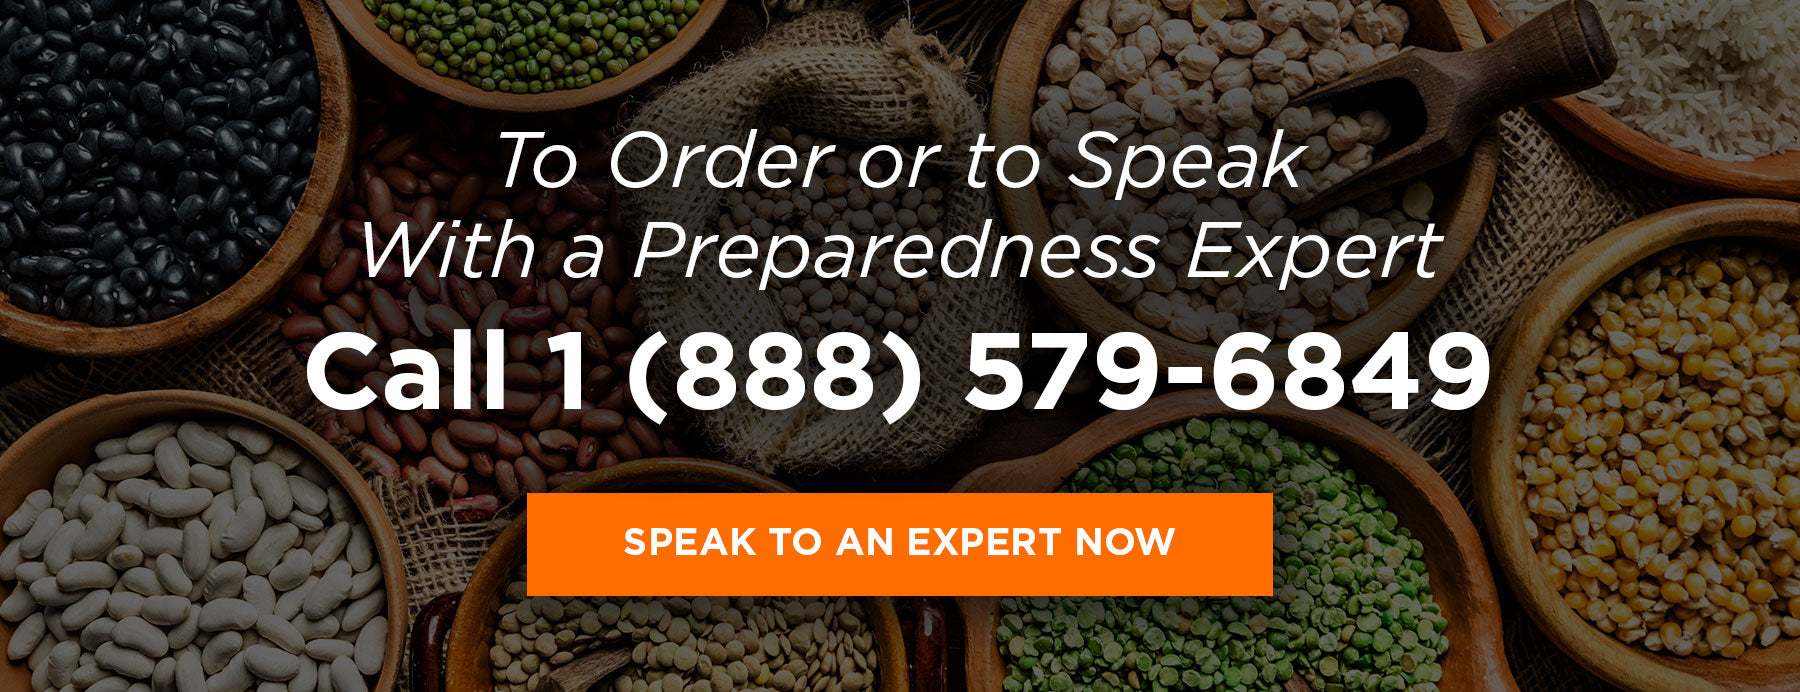 Talk to a preparedness expert